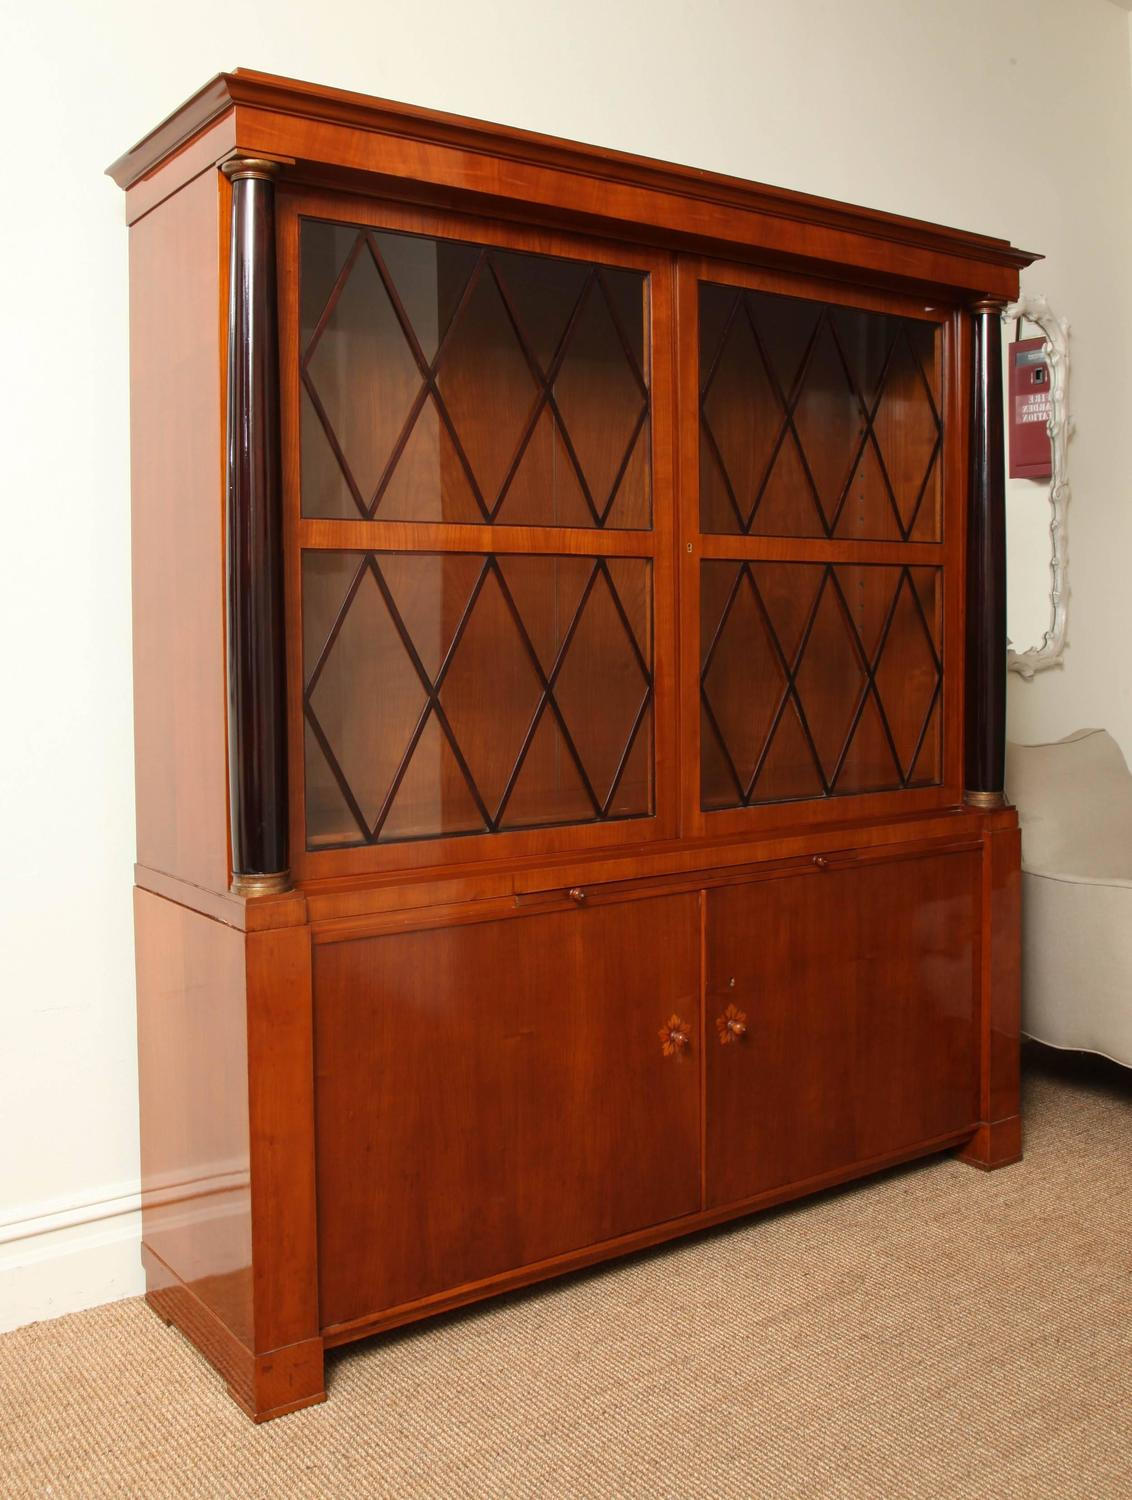 Deutsche Wk M Bel Library Cabinet Germany Circa 1920 For